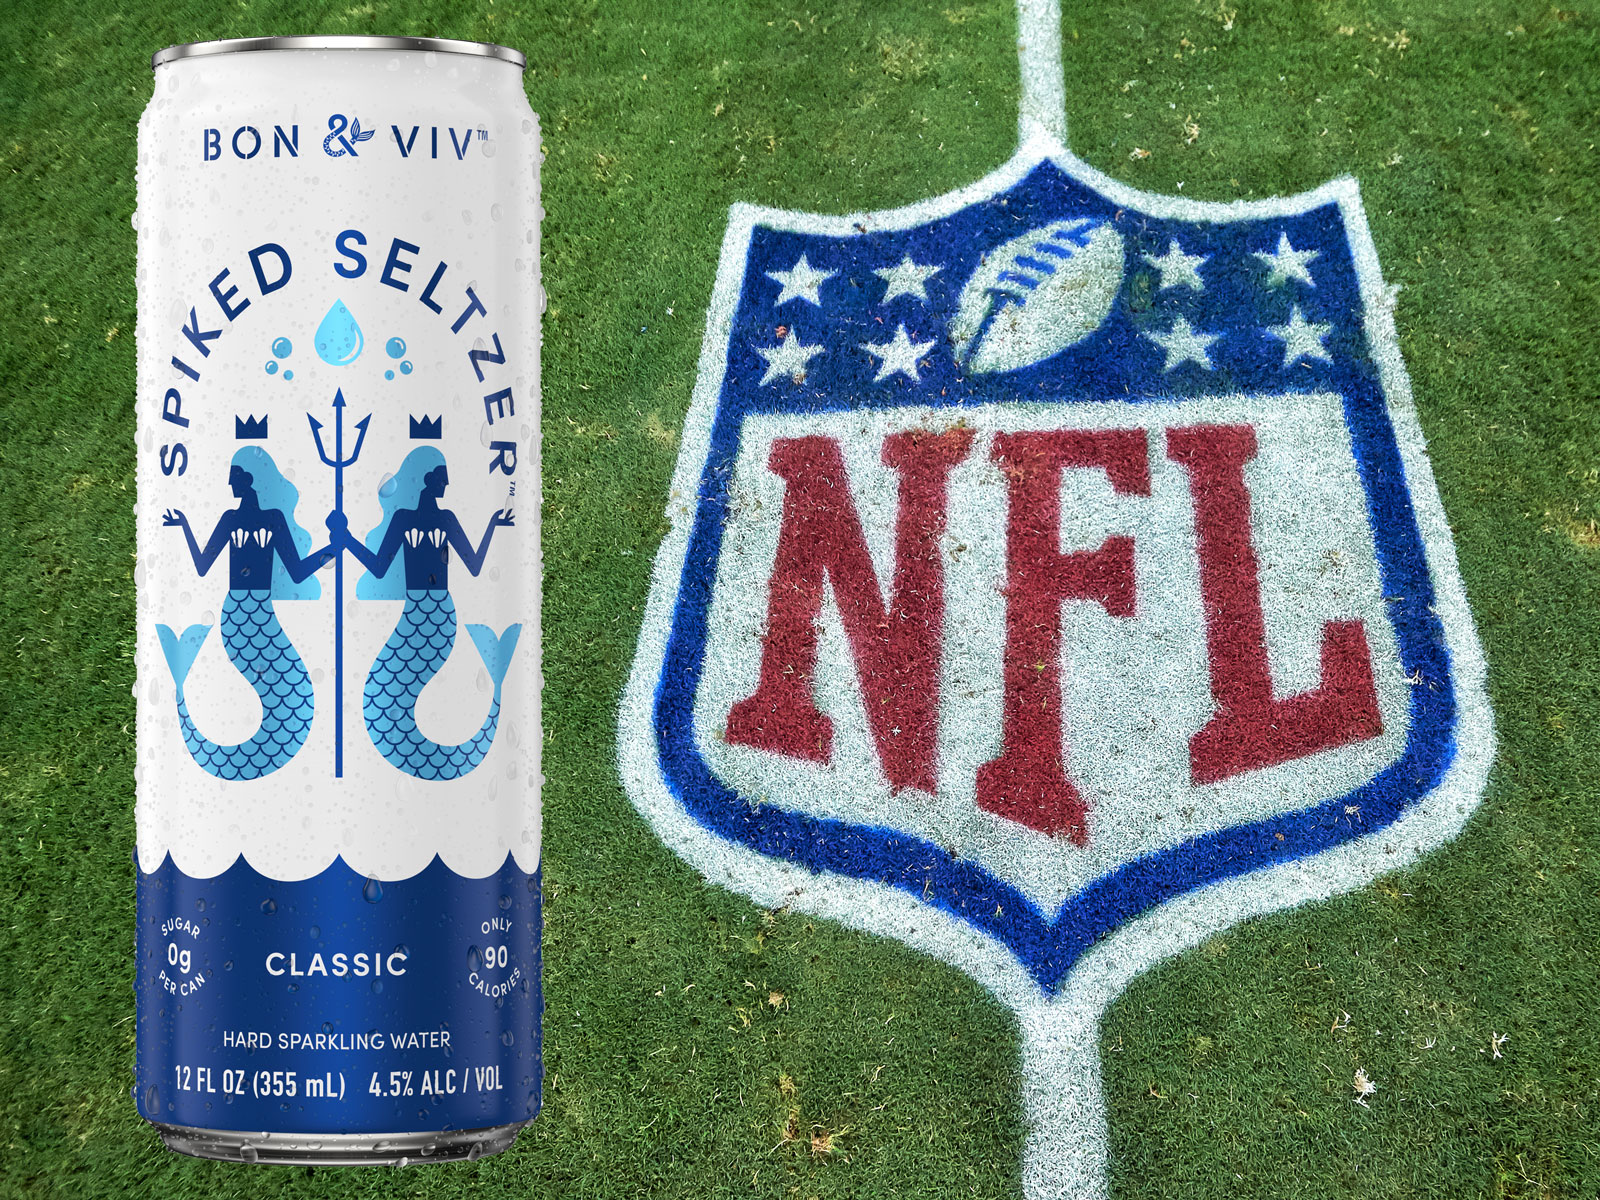 The NFL Has an 'Official Hard Seltzer'